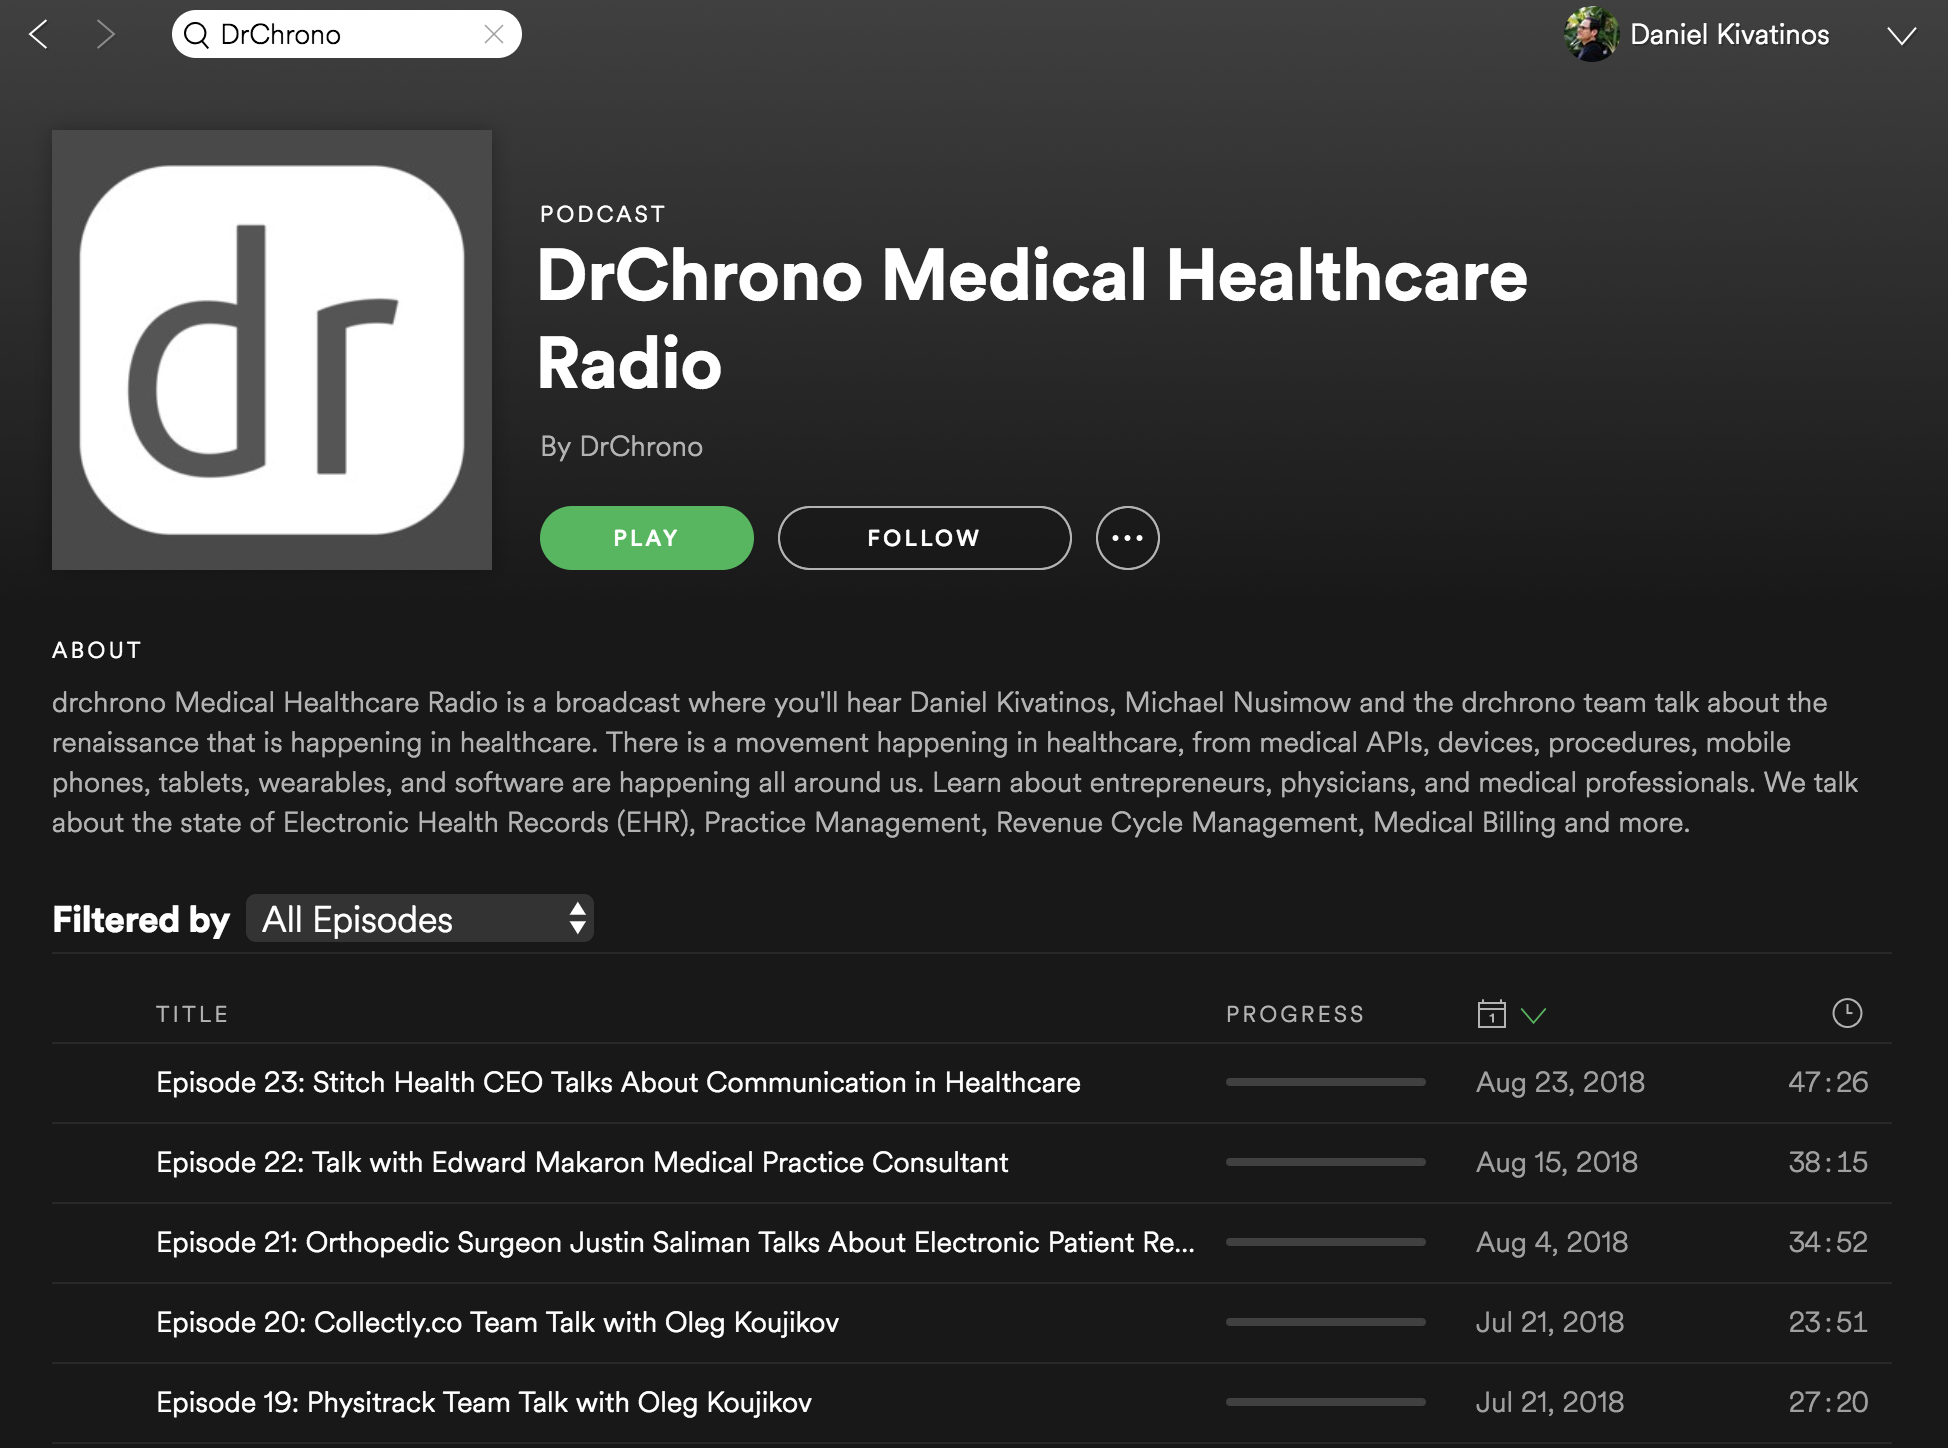 Check out the Healthcare DrChrono podcast on Spotify https